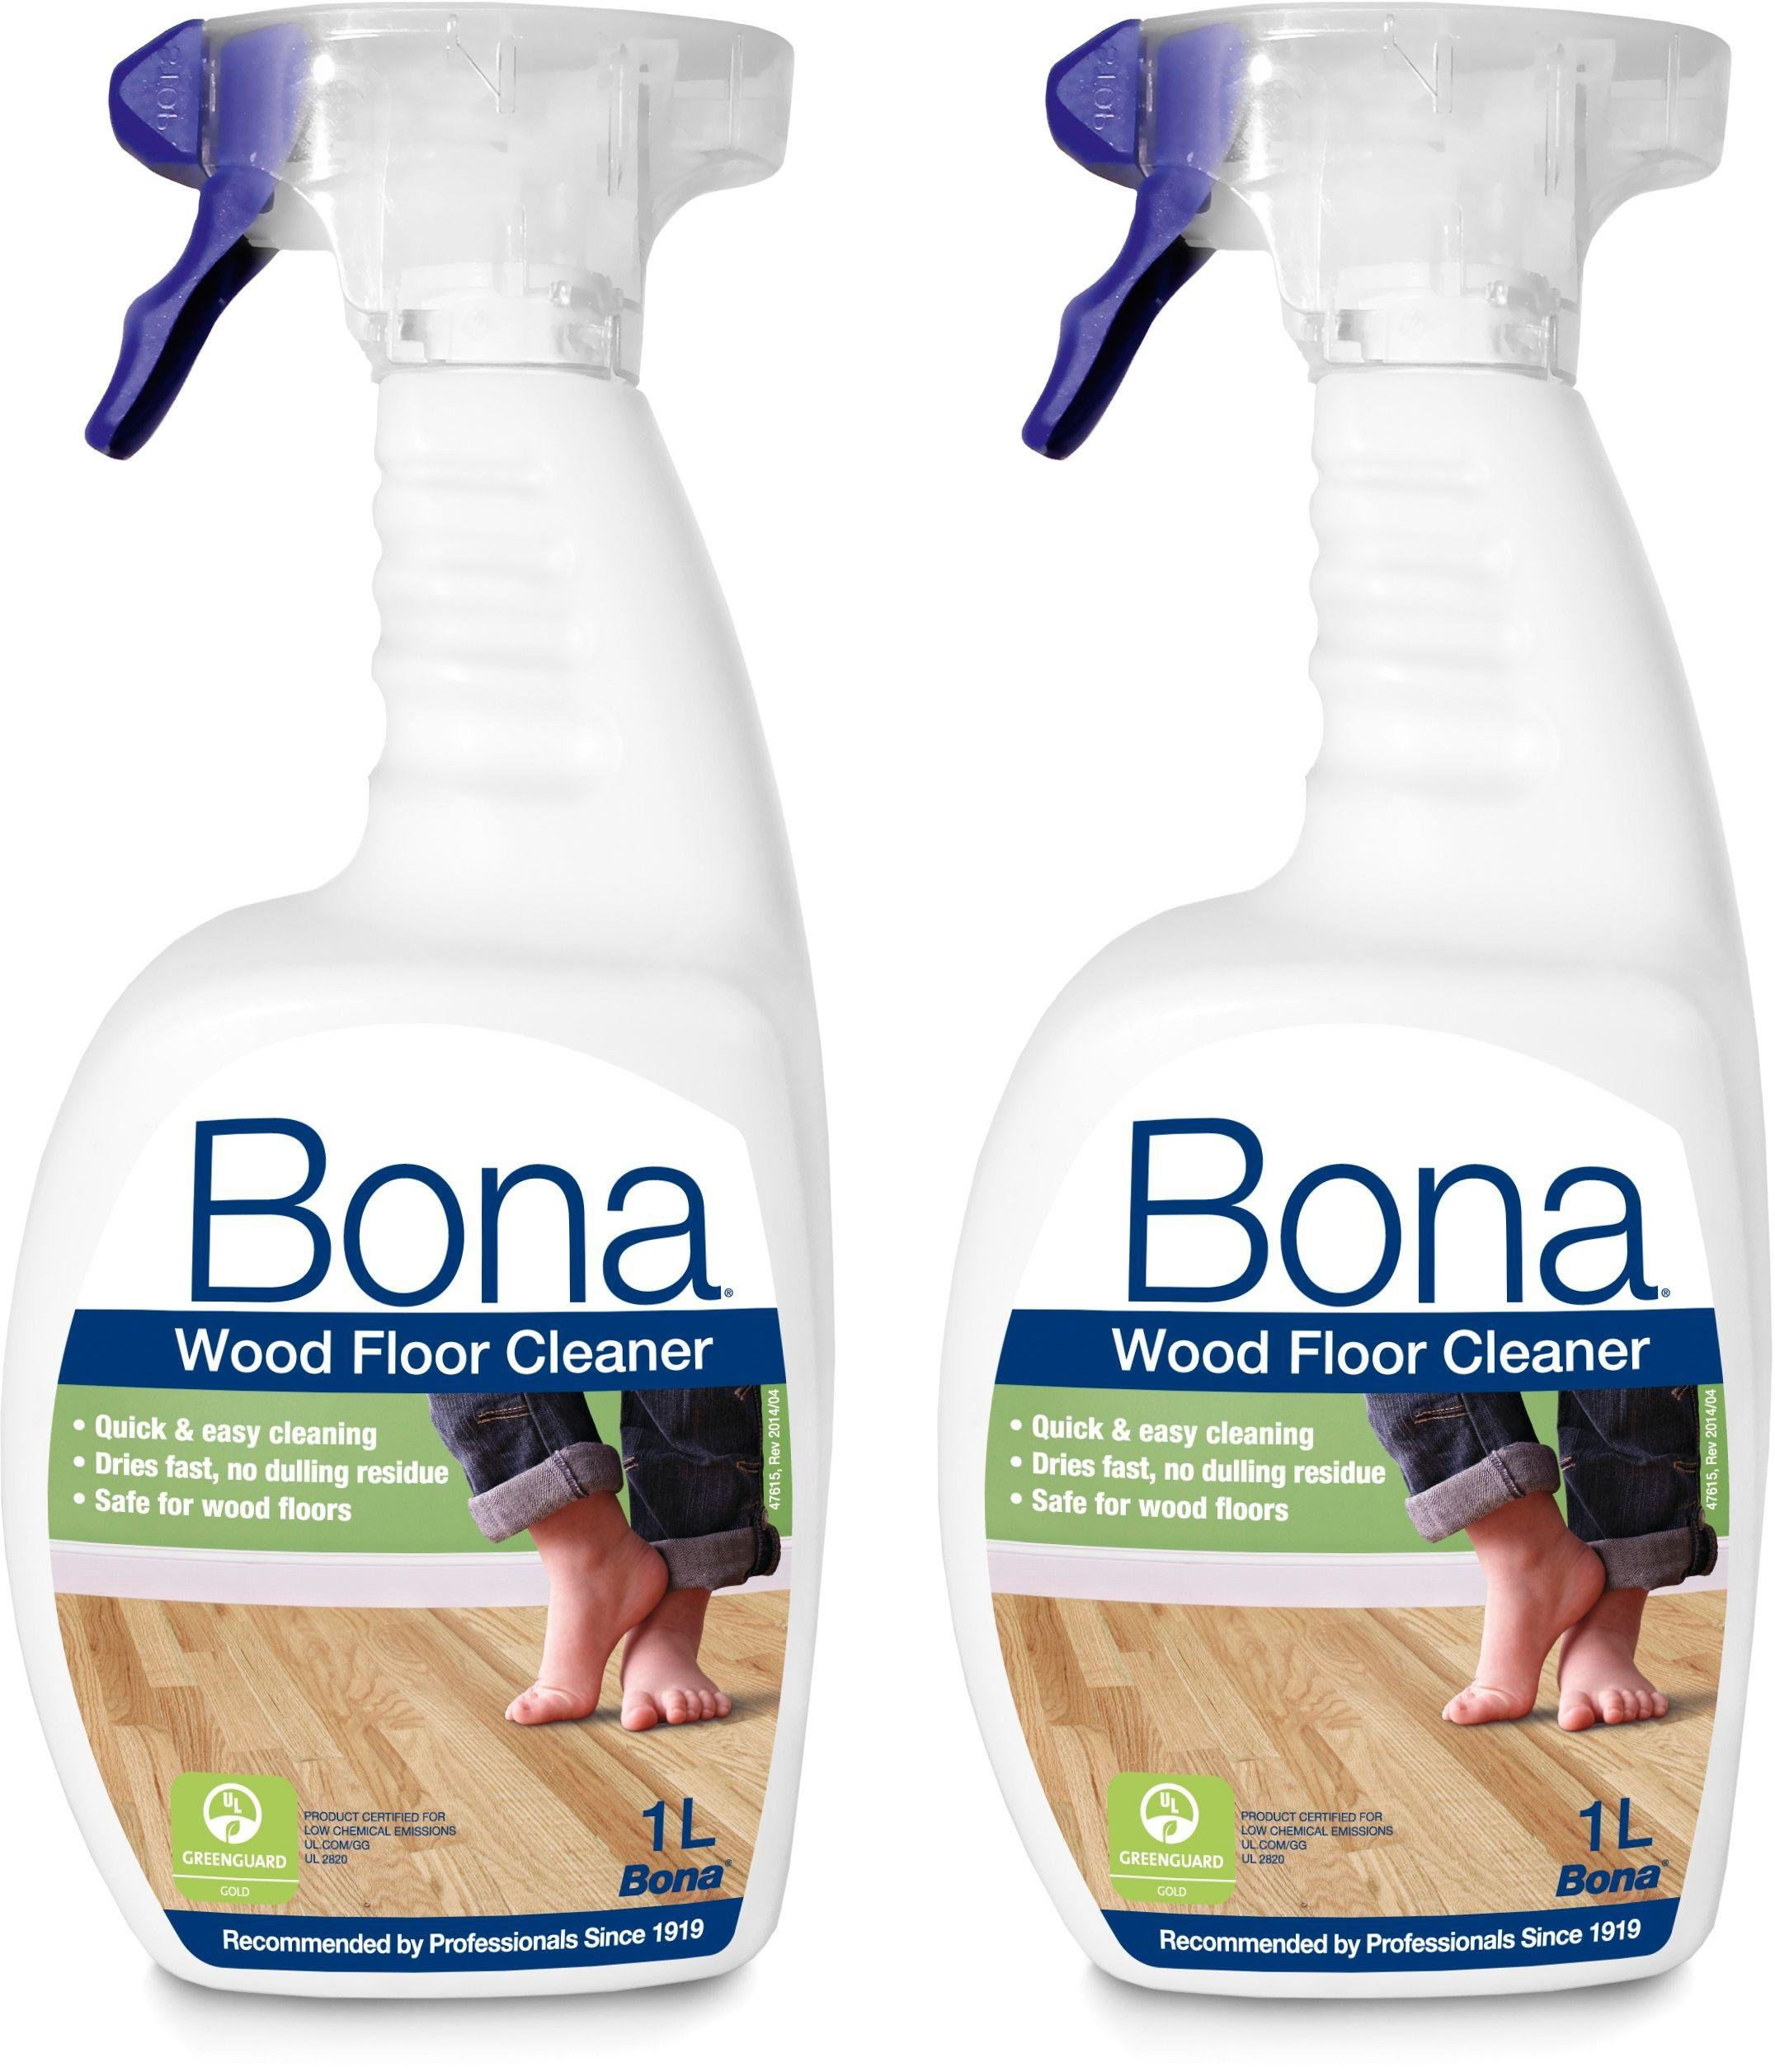 Bona 1L Wood Floor Cleaning Solution Spray - Pack of 2